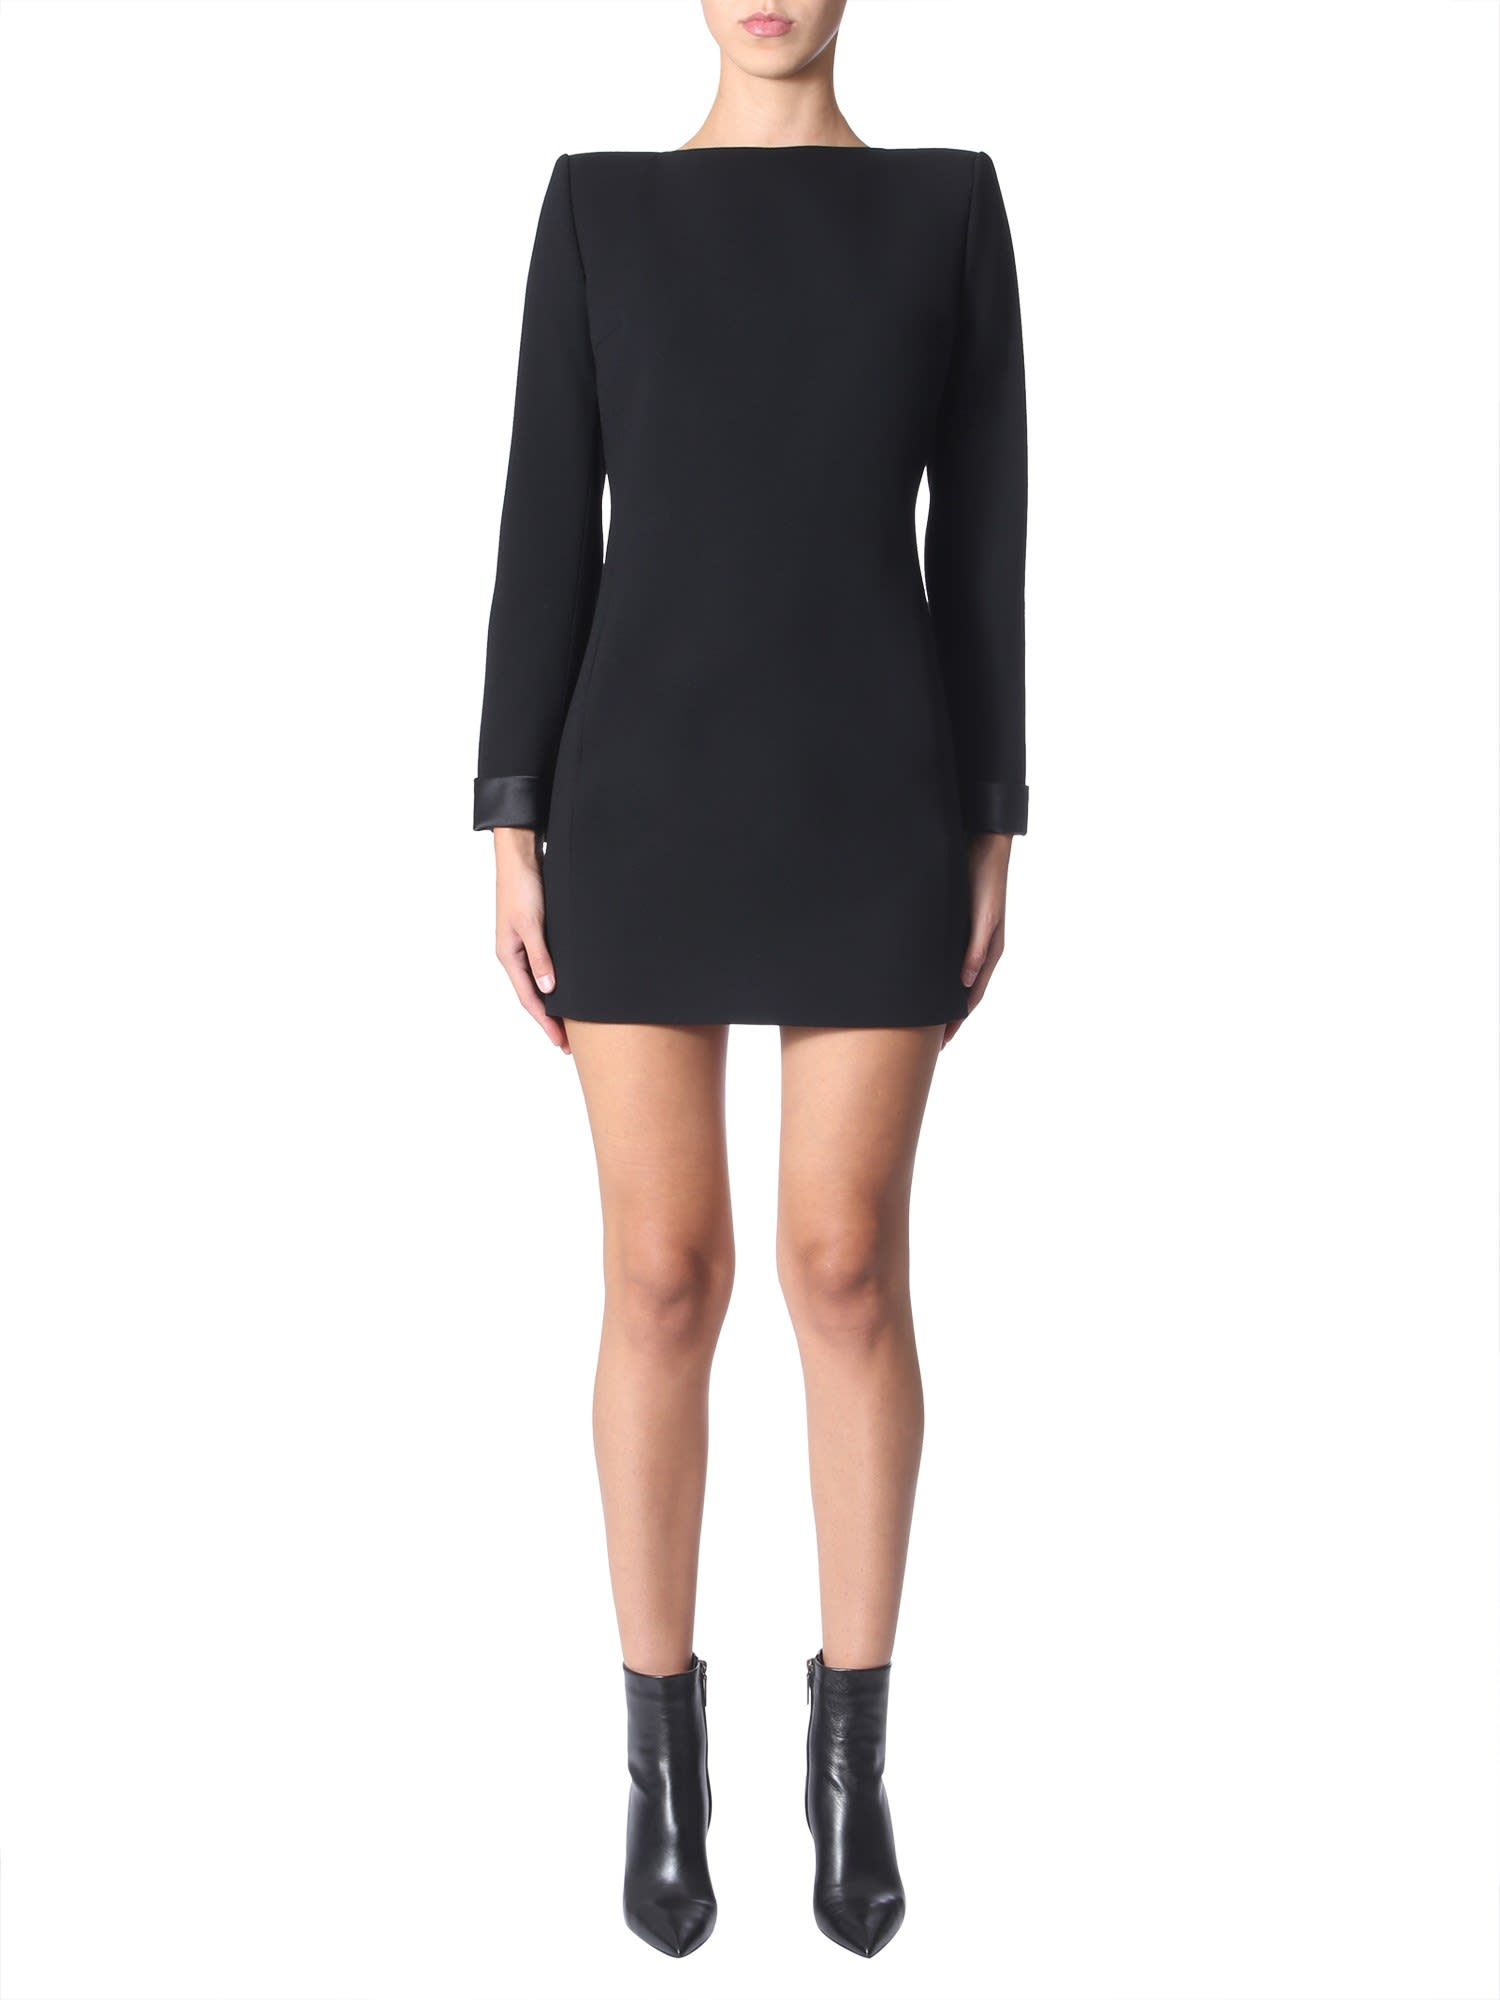 Saint Laurent Wool Dress